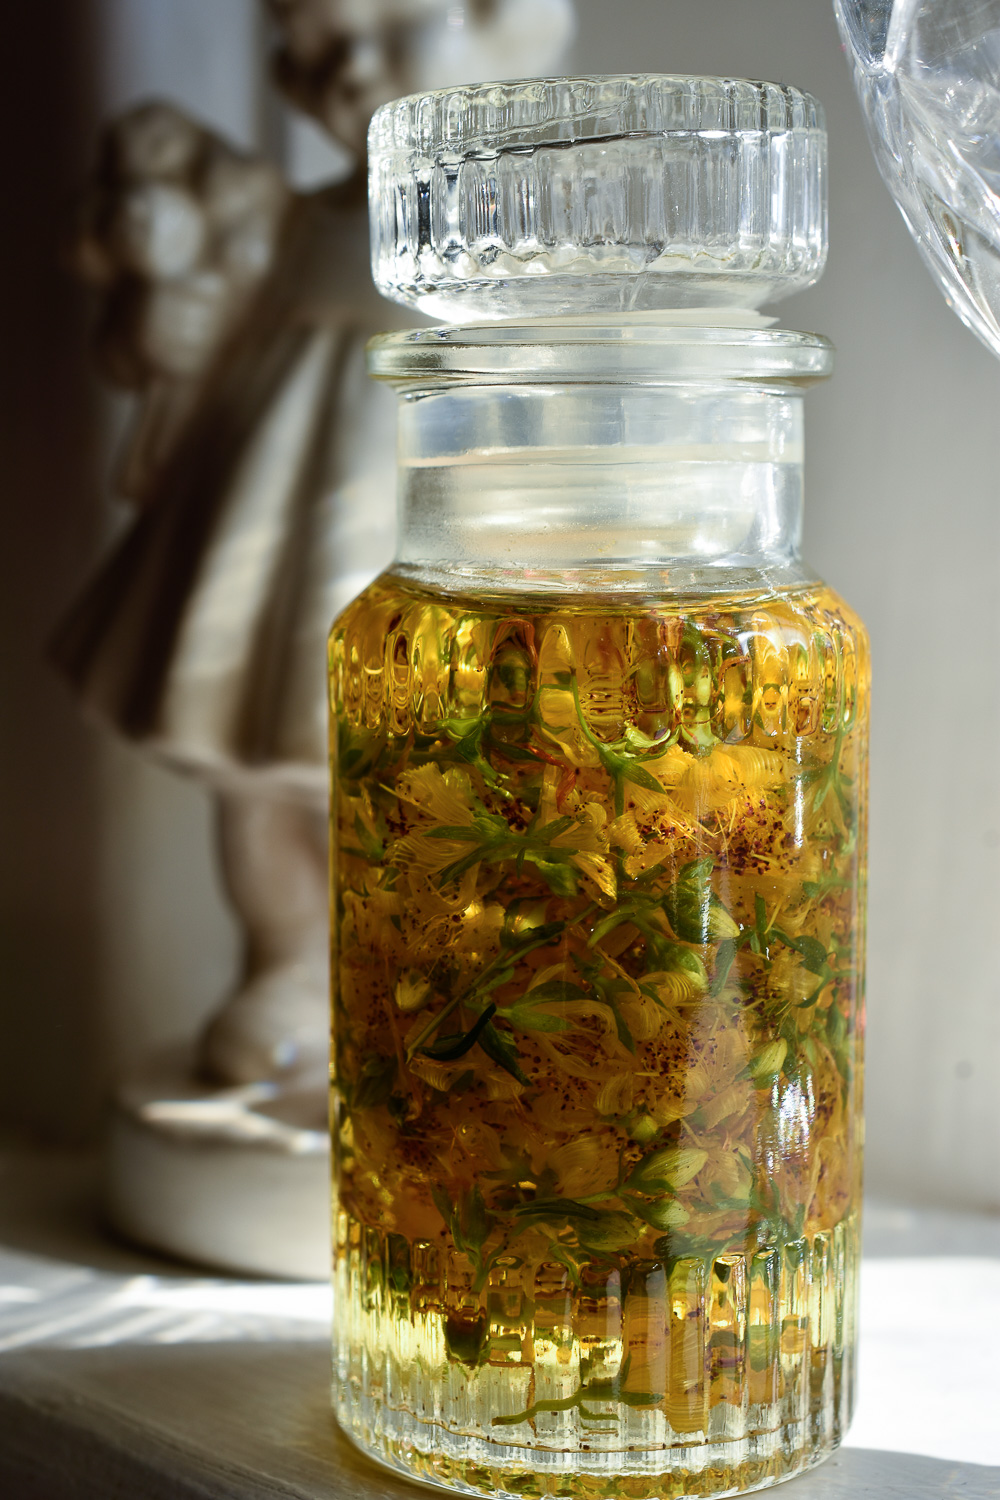 Oil Infusion of St. John's Wort ( Hypericum perforatum )